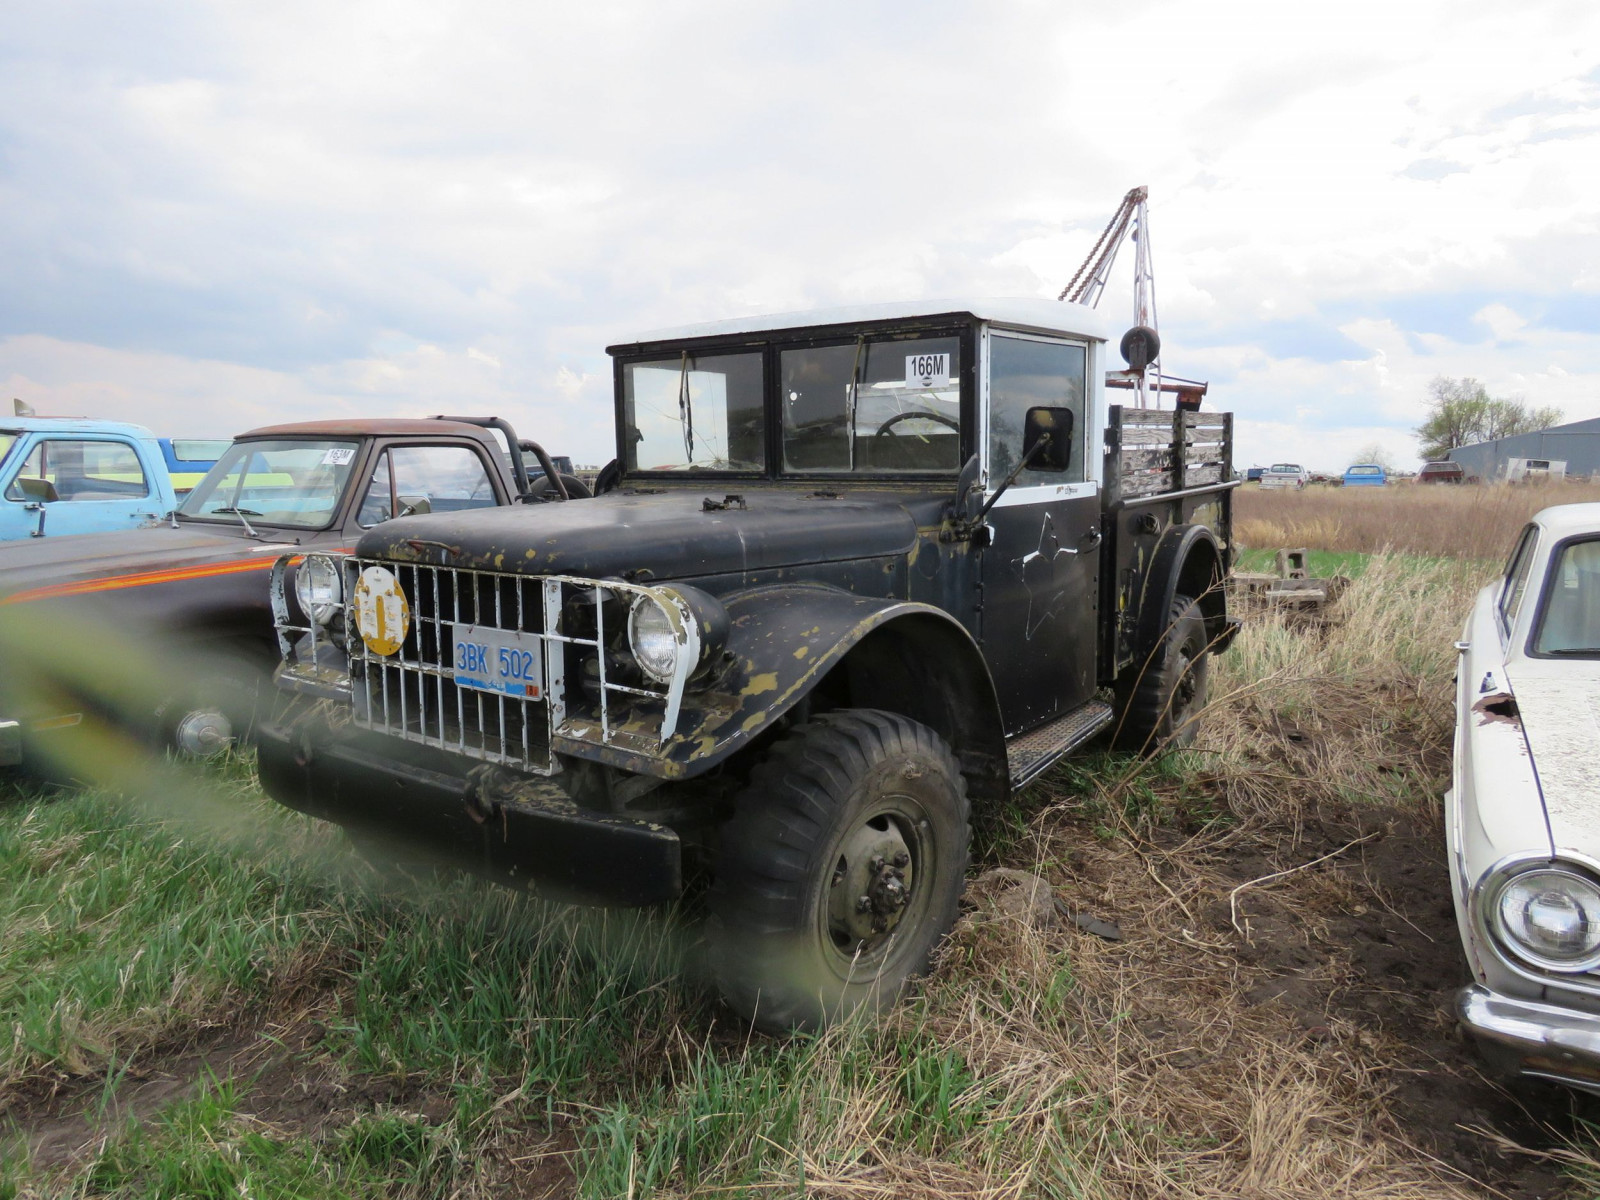 Jeep Wrecker - Image 1